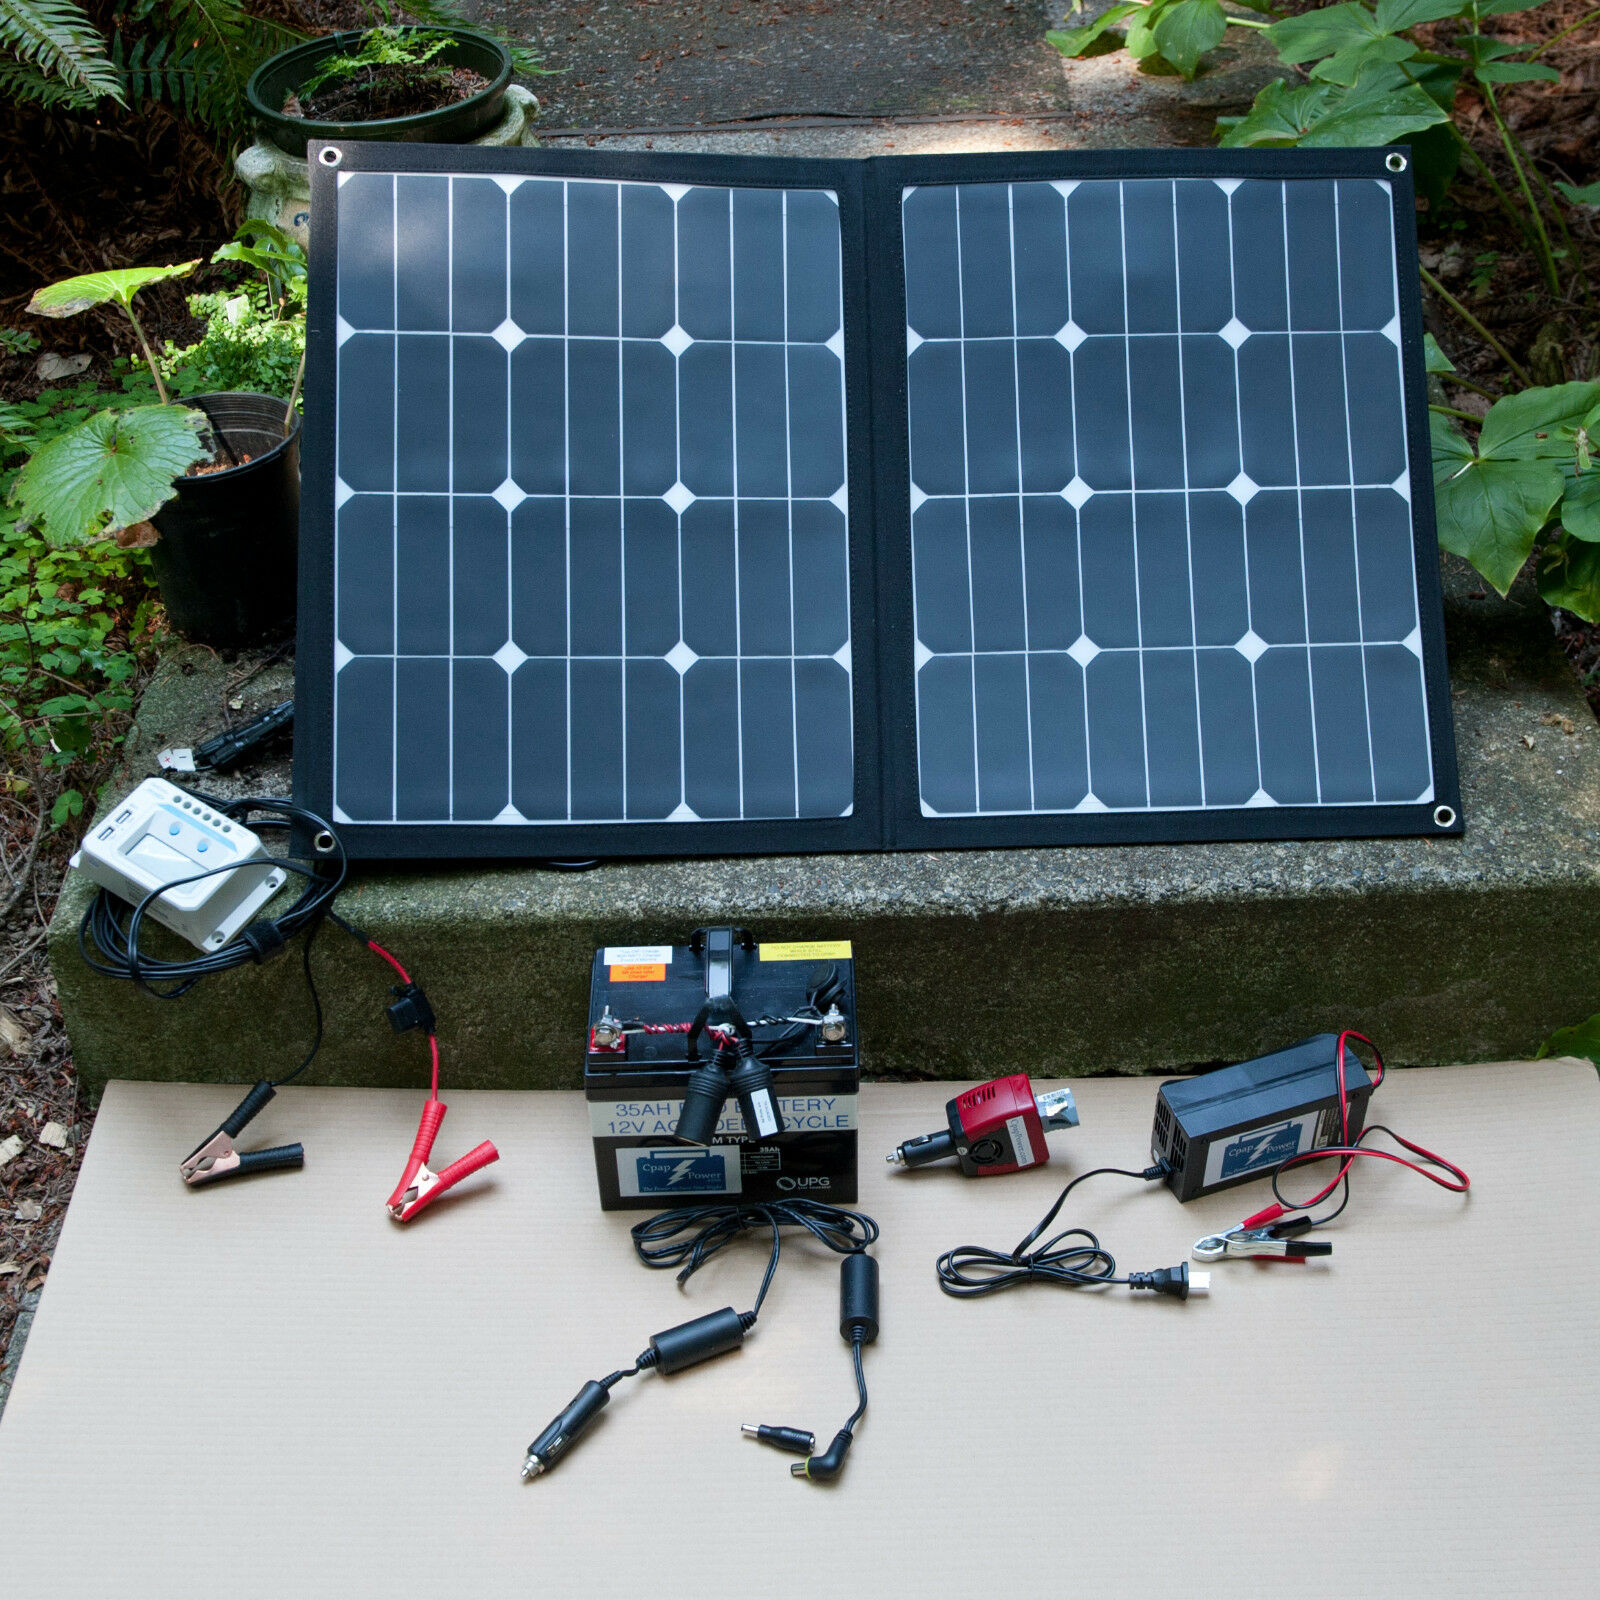 SOLAR POWER Charged BATTERY KIT  - Most Cpap Brands -Camping RECHARGE from SUN